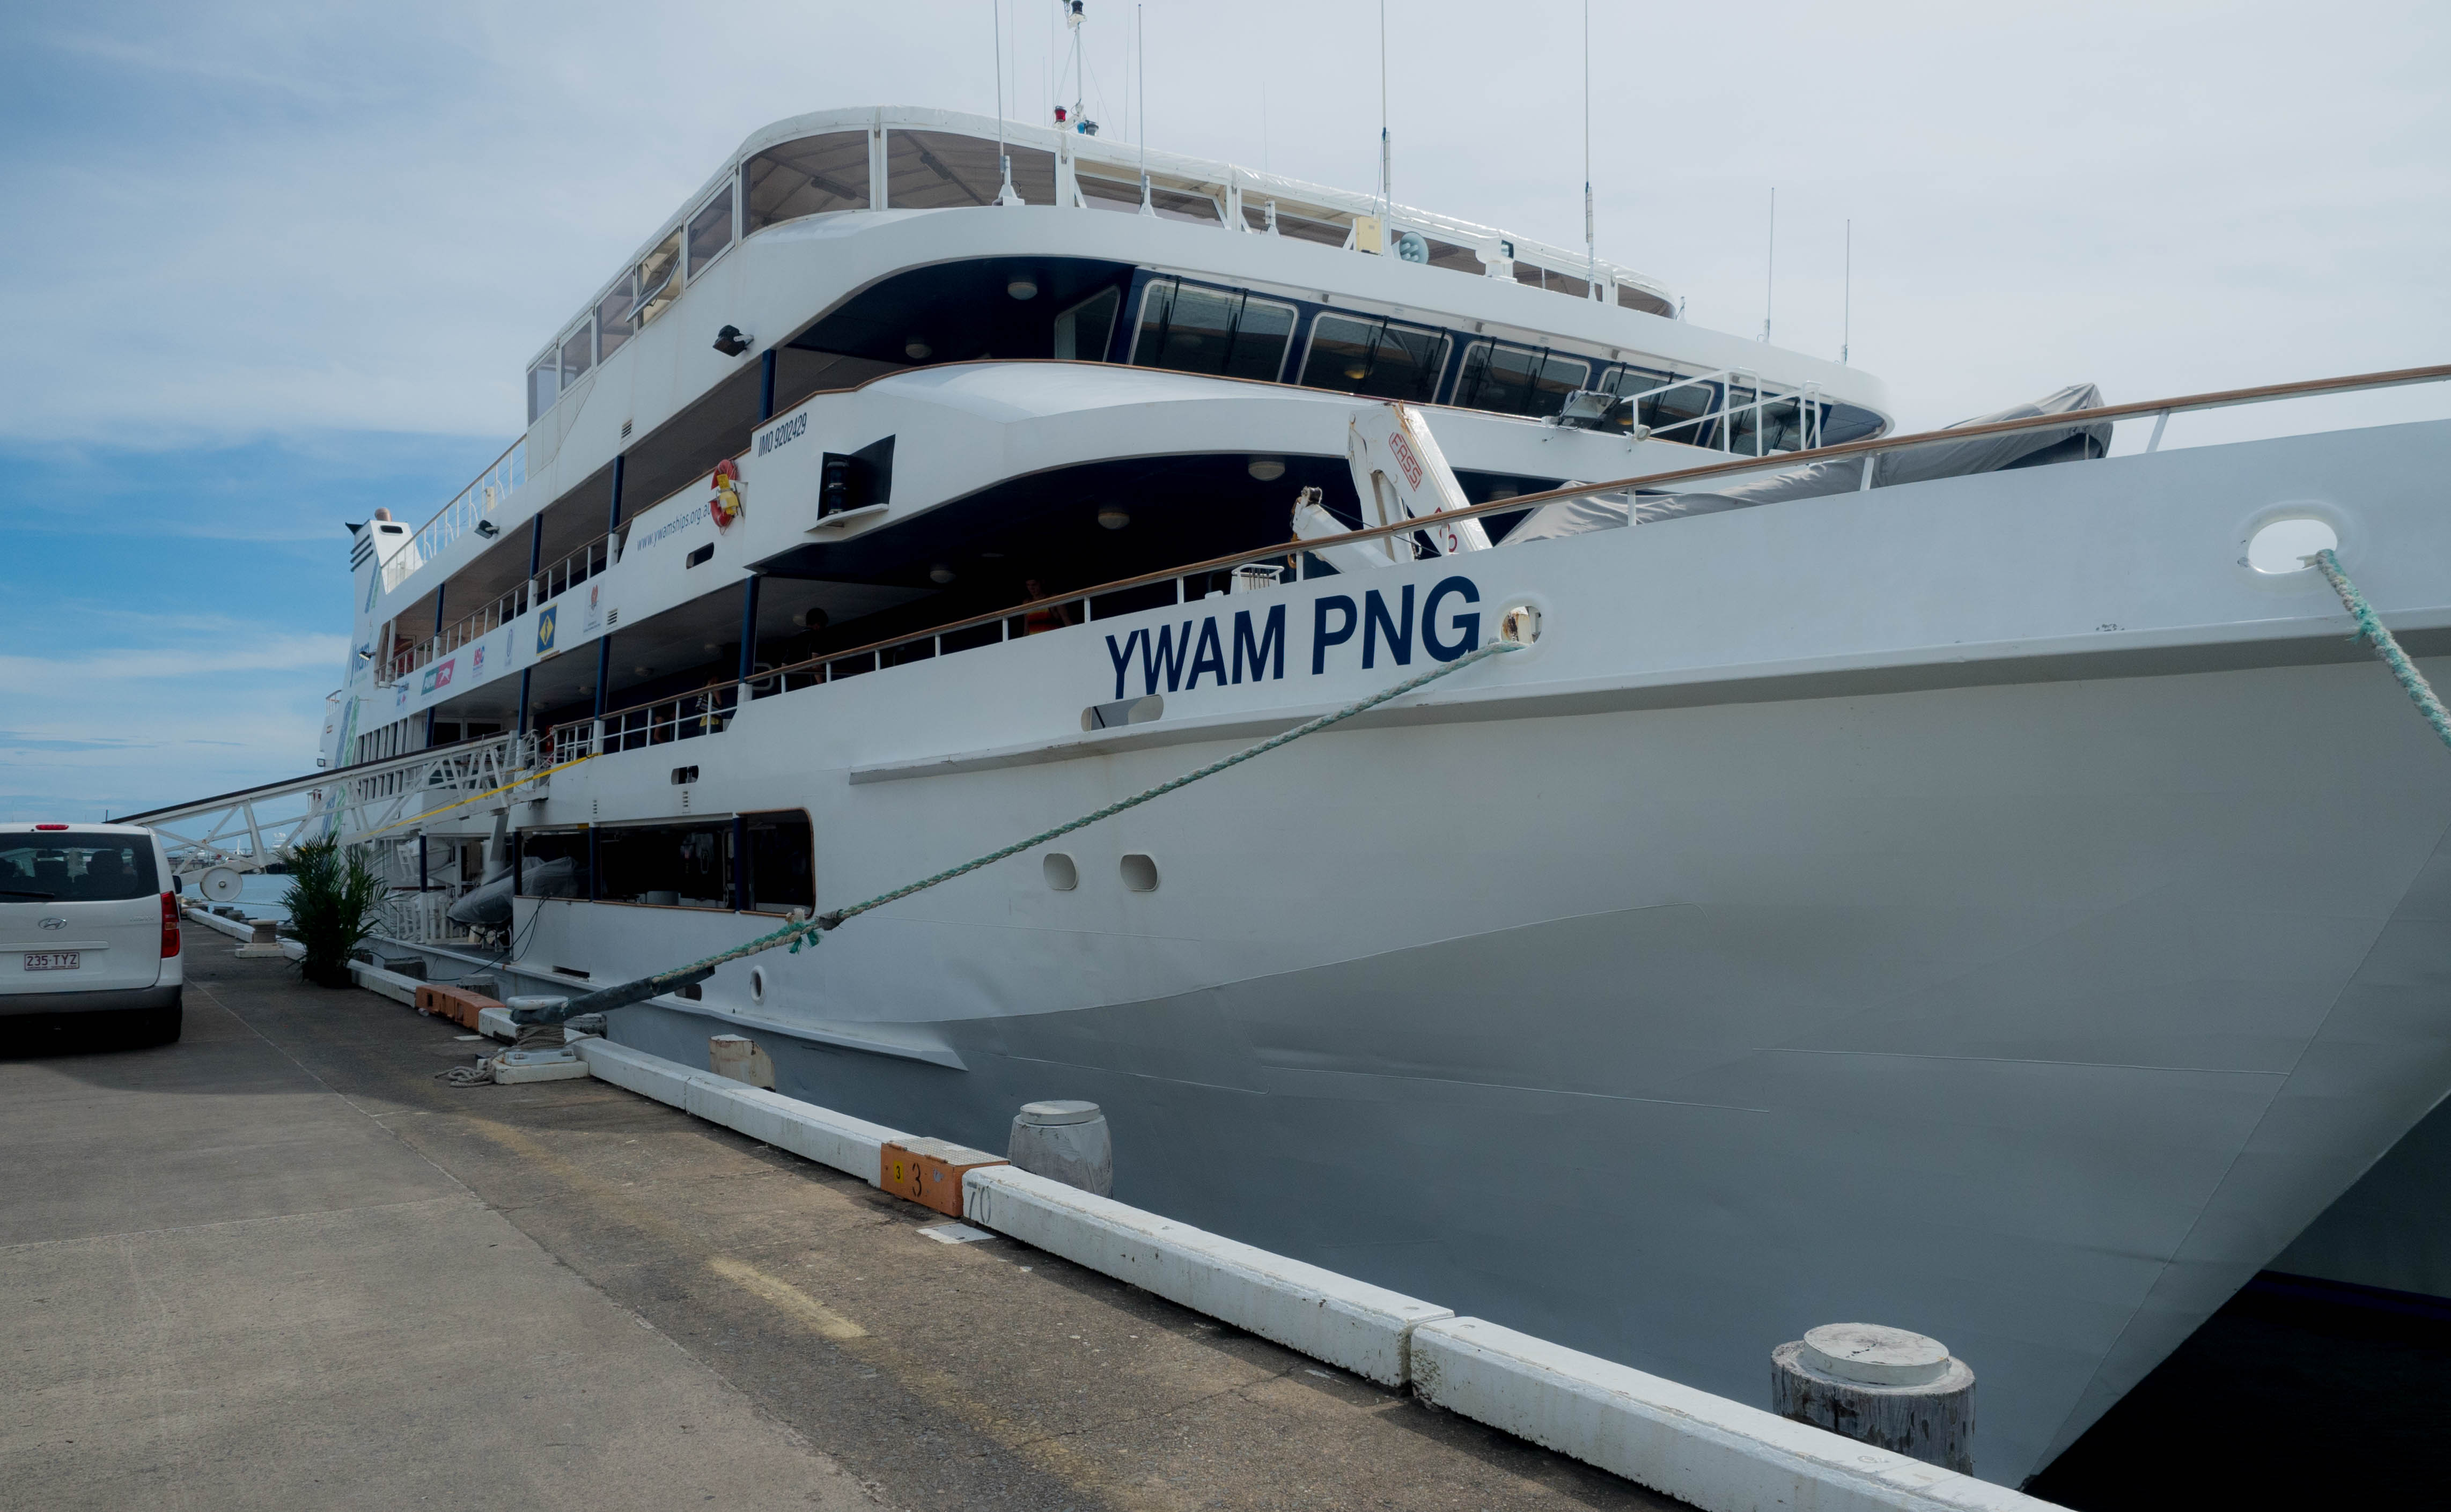 Ports North Welcomes MV YWAM PNG to Cairns.